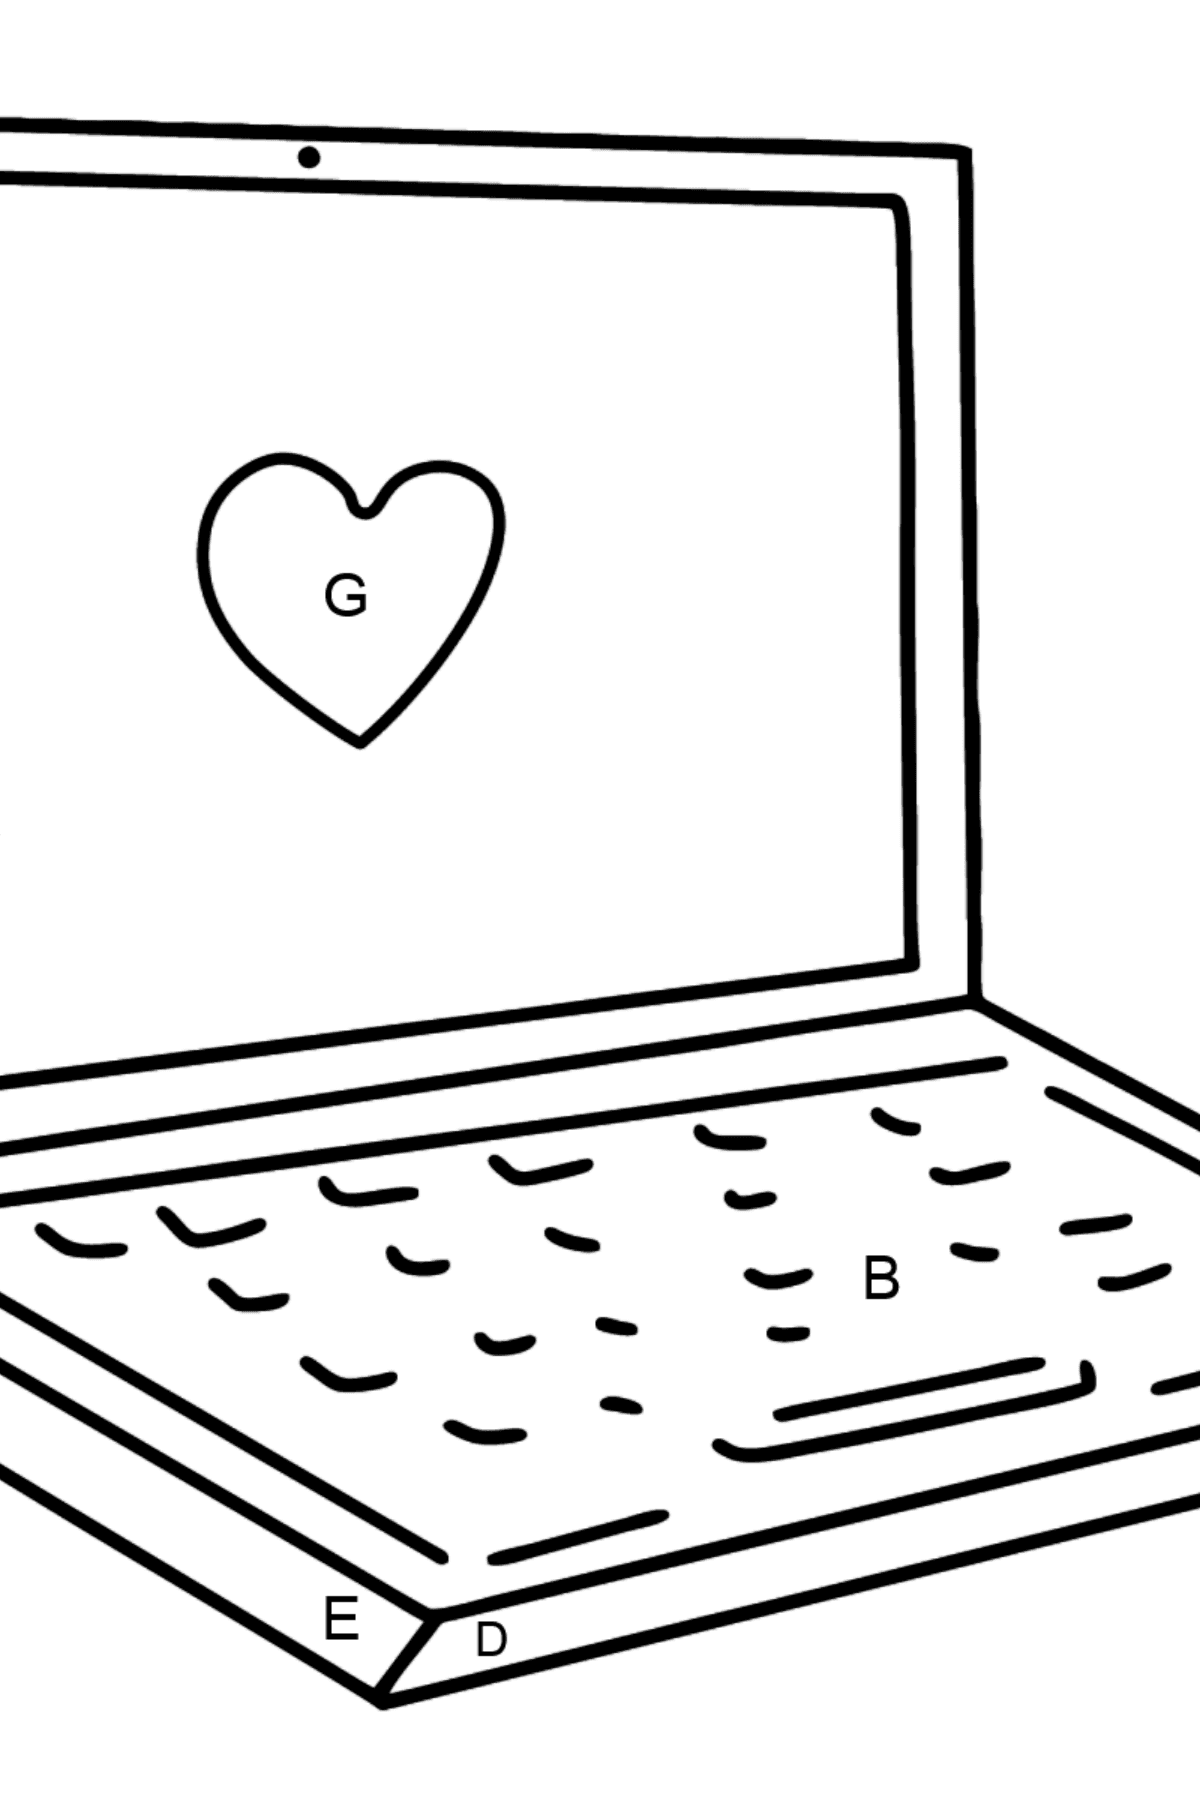 Notebook coloring page - Coloring by Letters for Kids